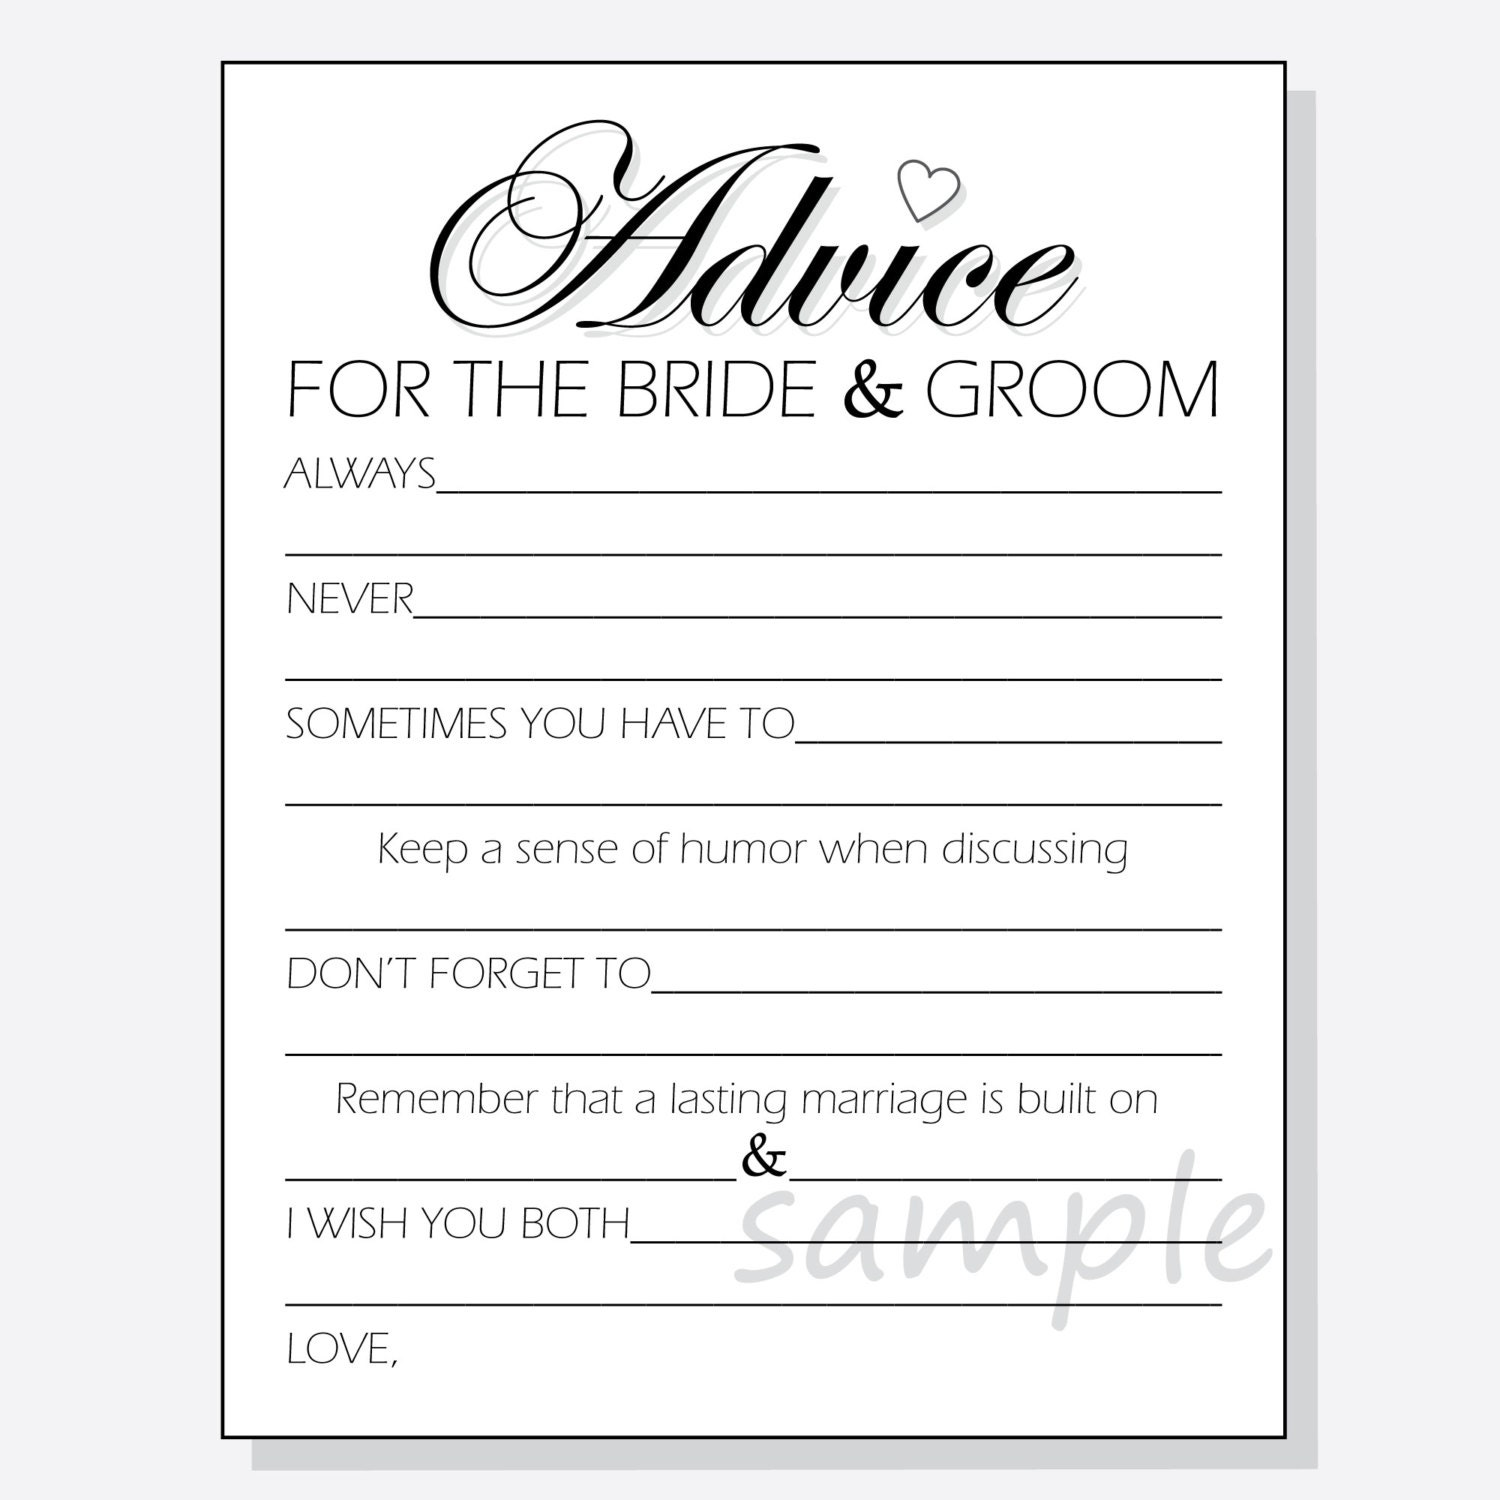 Diy advice for the bride groom printable cards for a shower for Bridal shower advice cards template